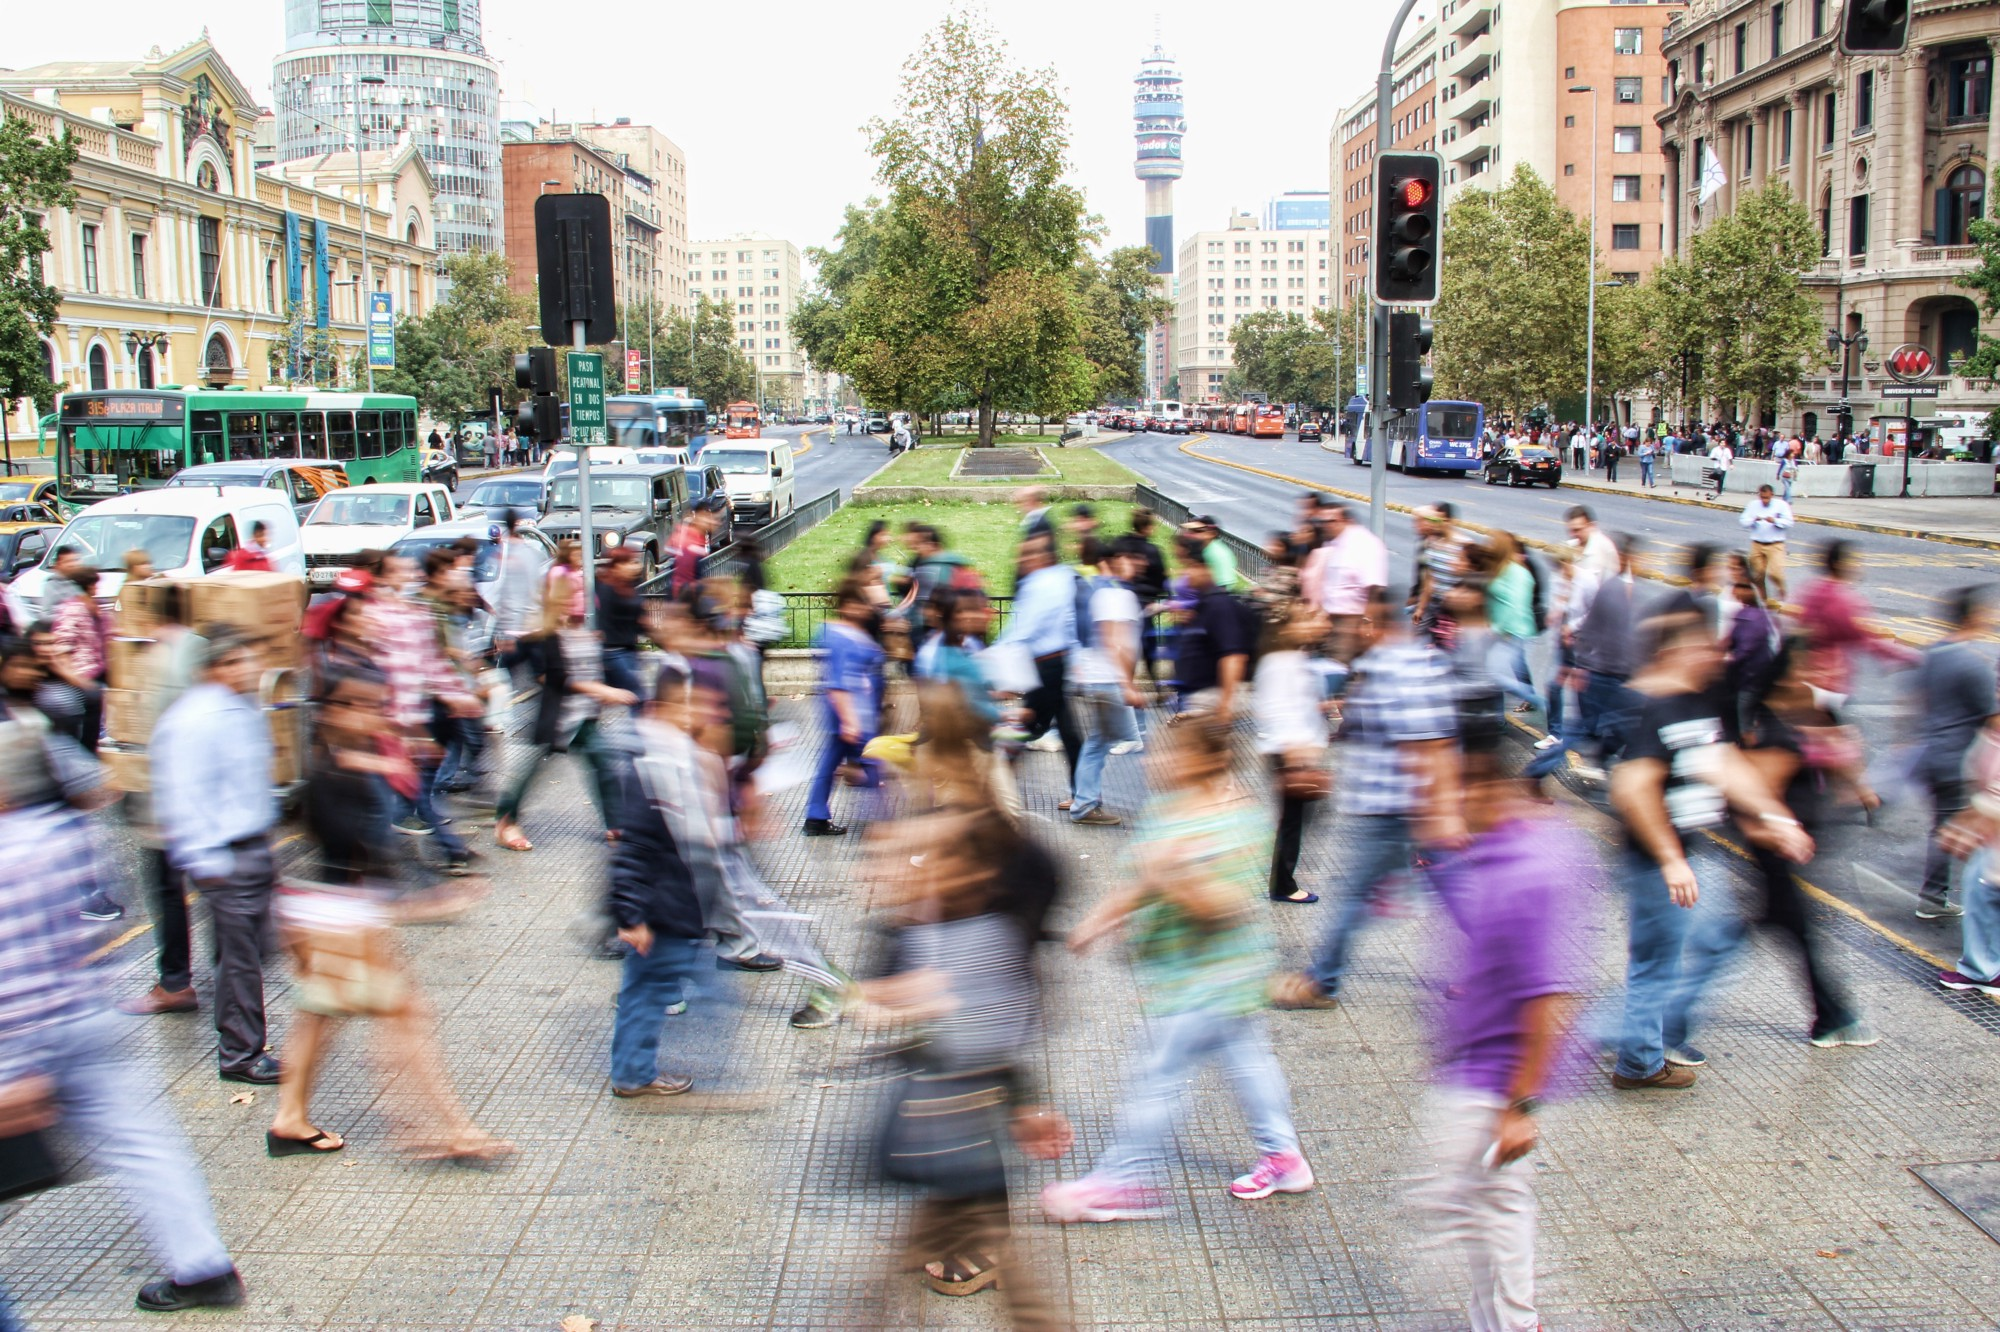 A crowd of people cross paths as they cross an urban street.